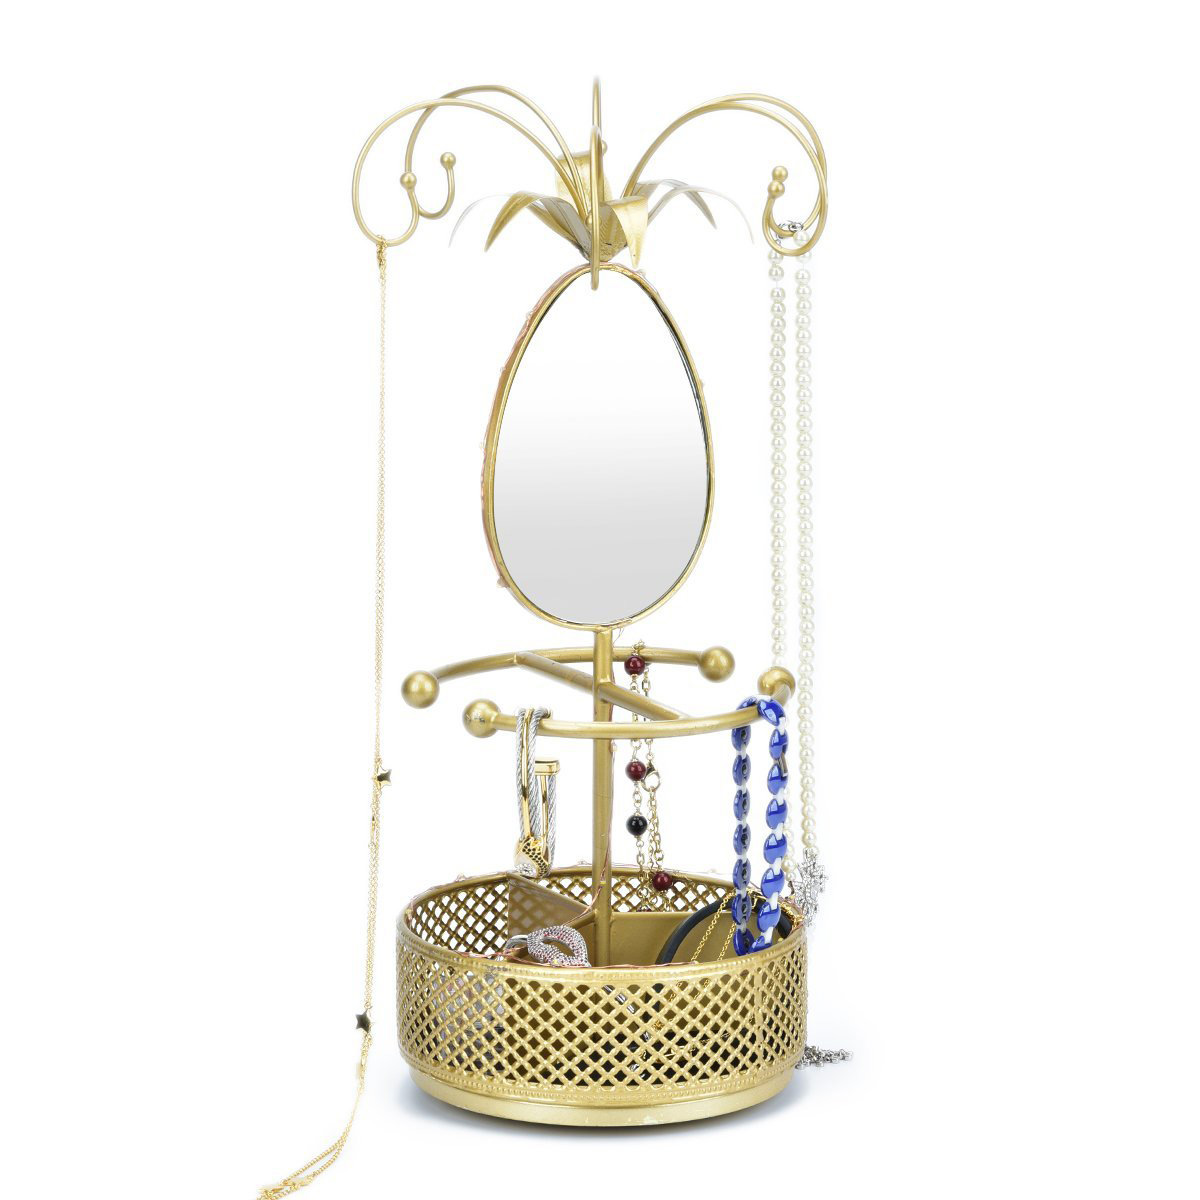 Beautiful Golden Mirrored Jewelry Holder Stand